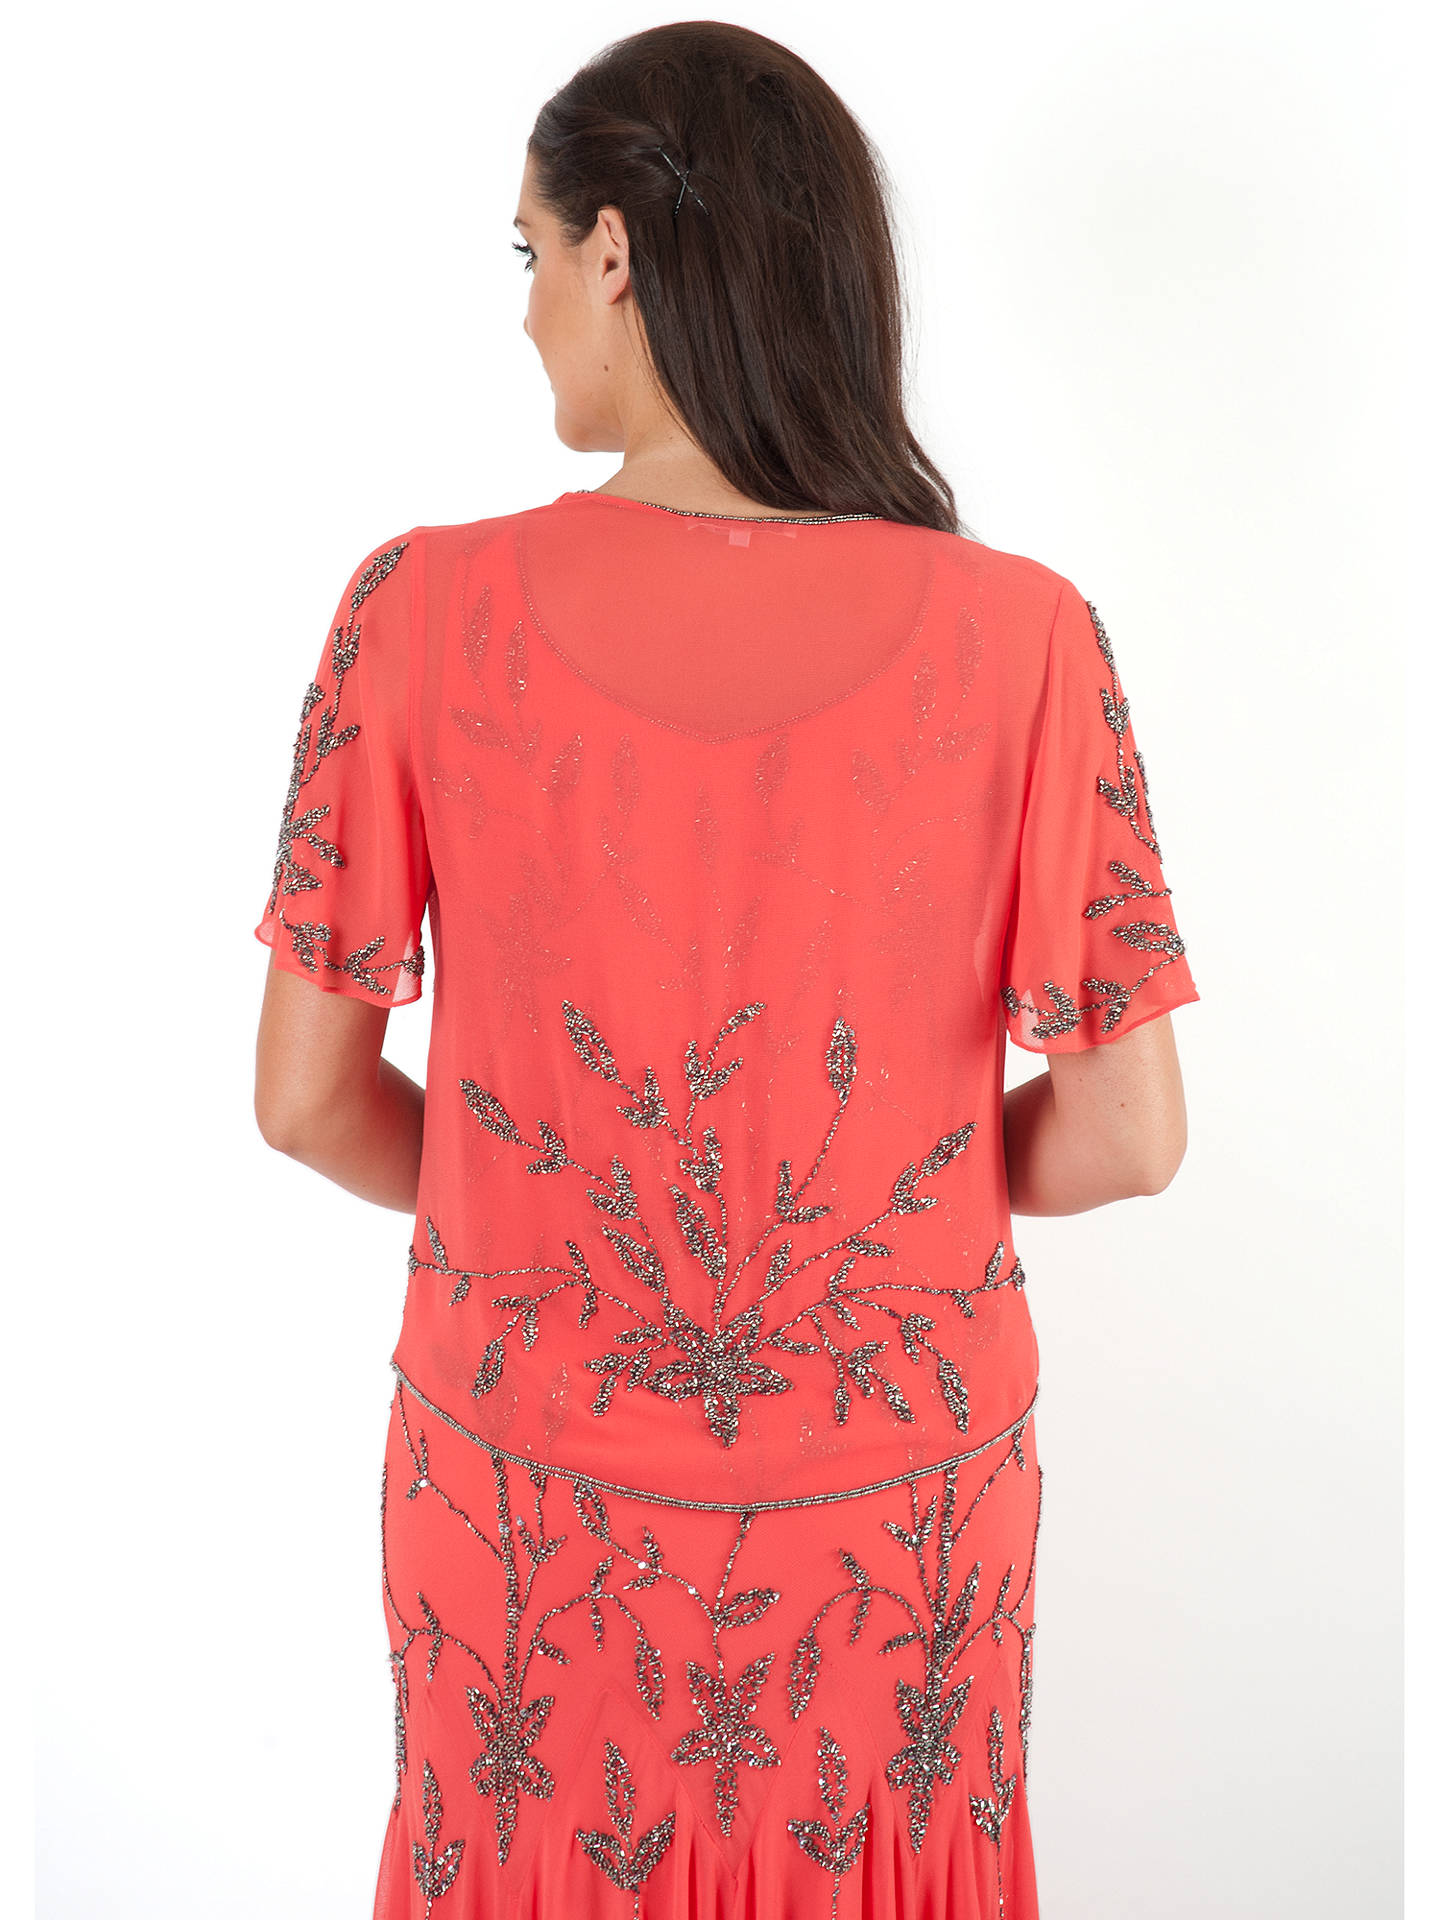 BuyChesca Beaded Bolero, Coral, 12 Online at johnlewis.com